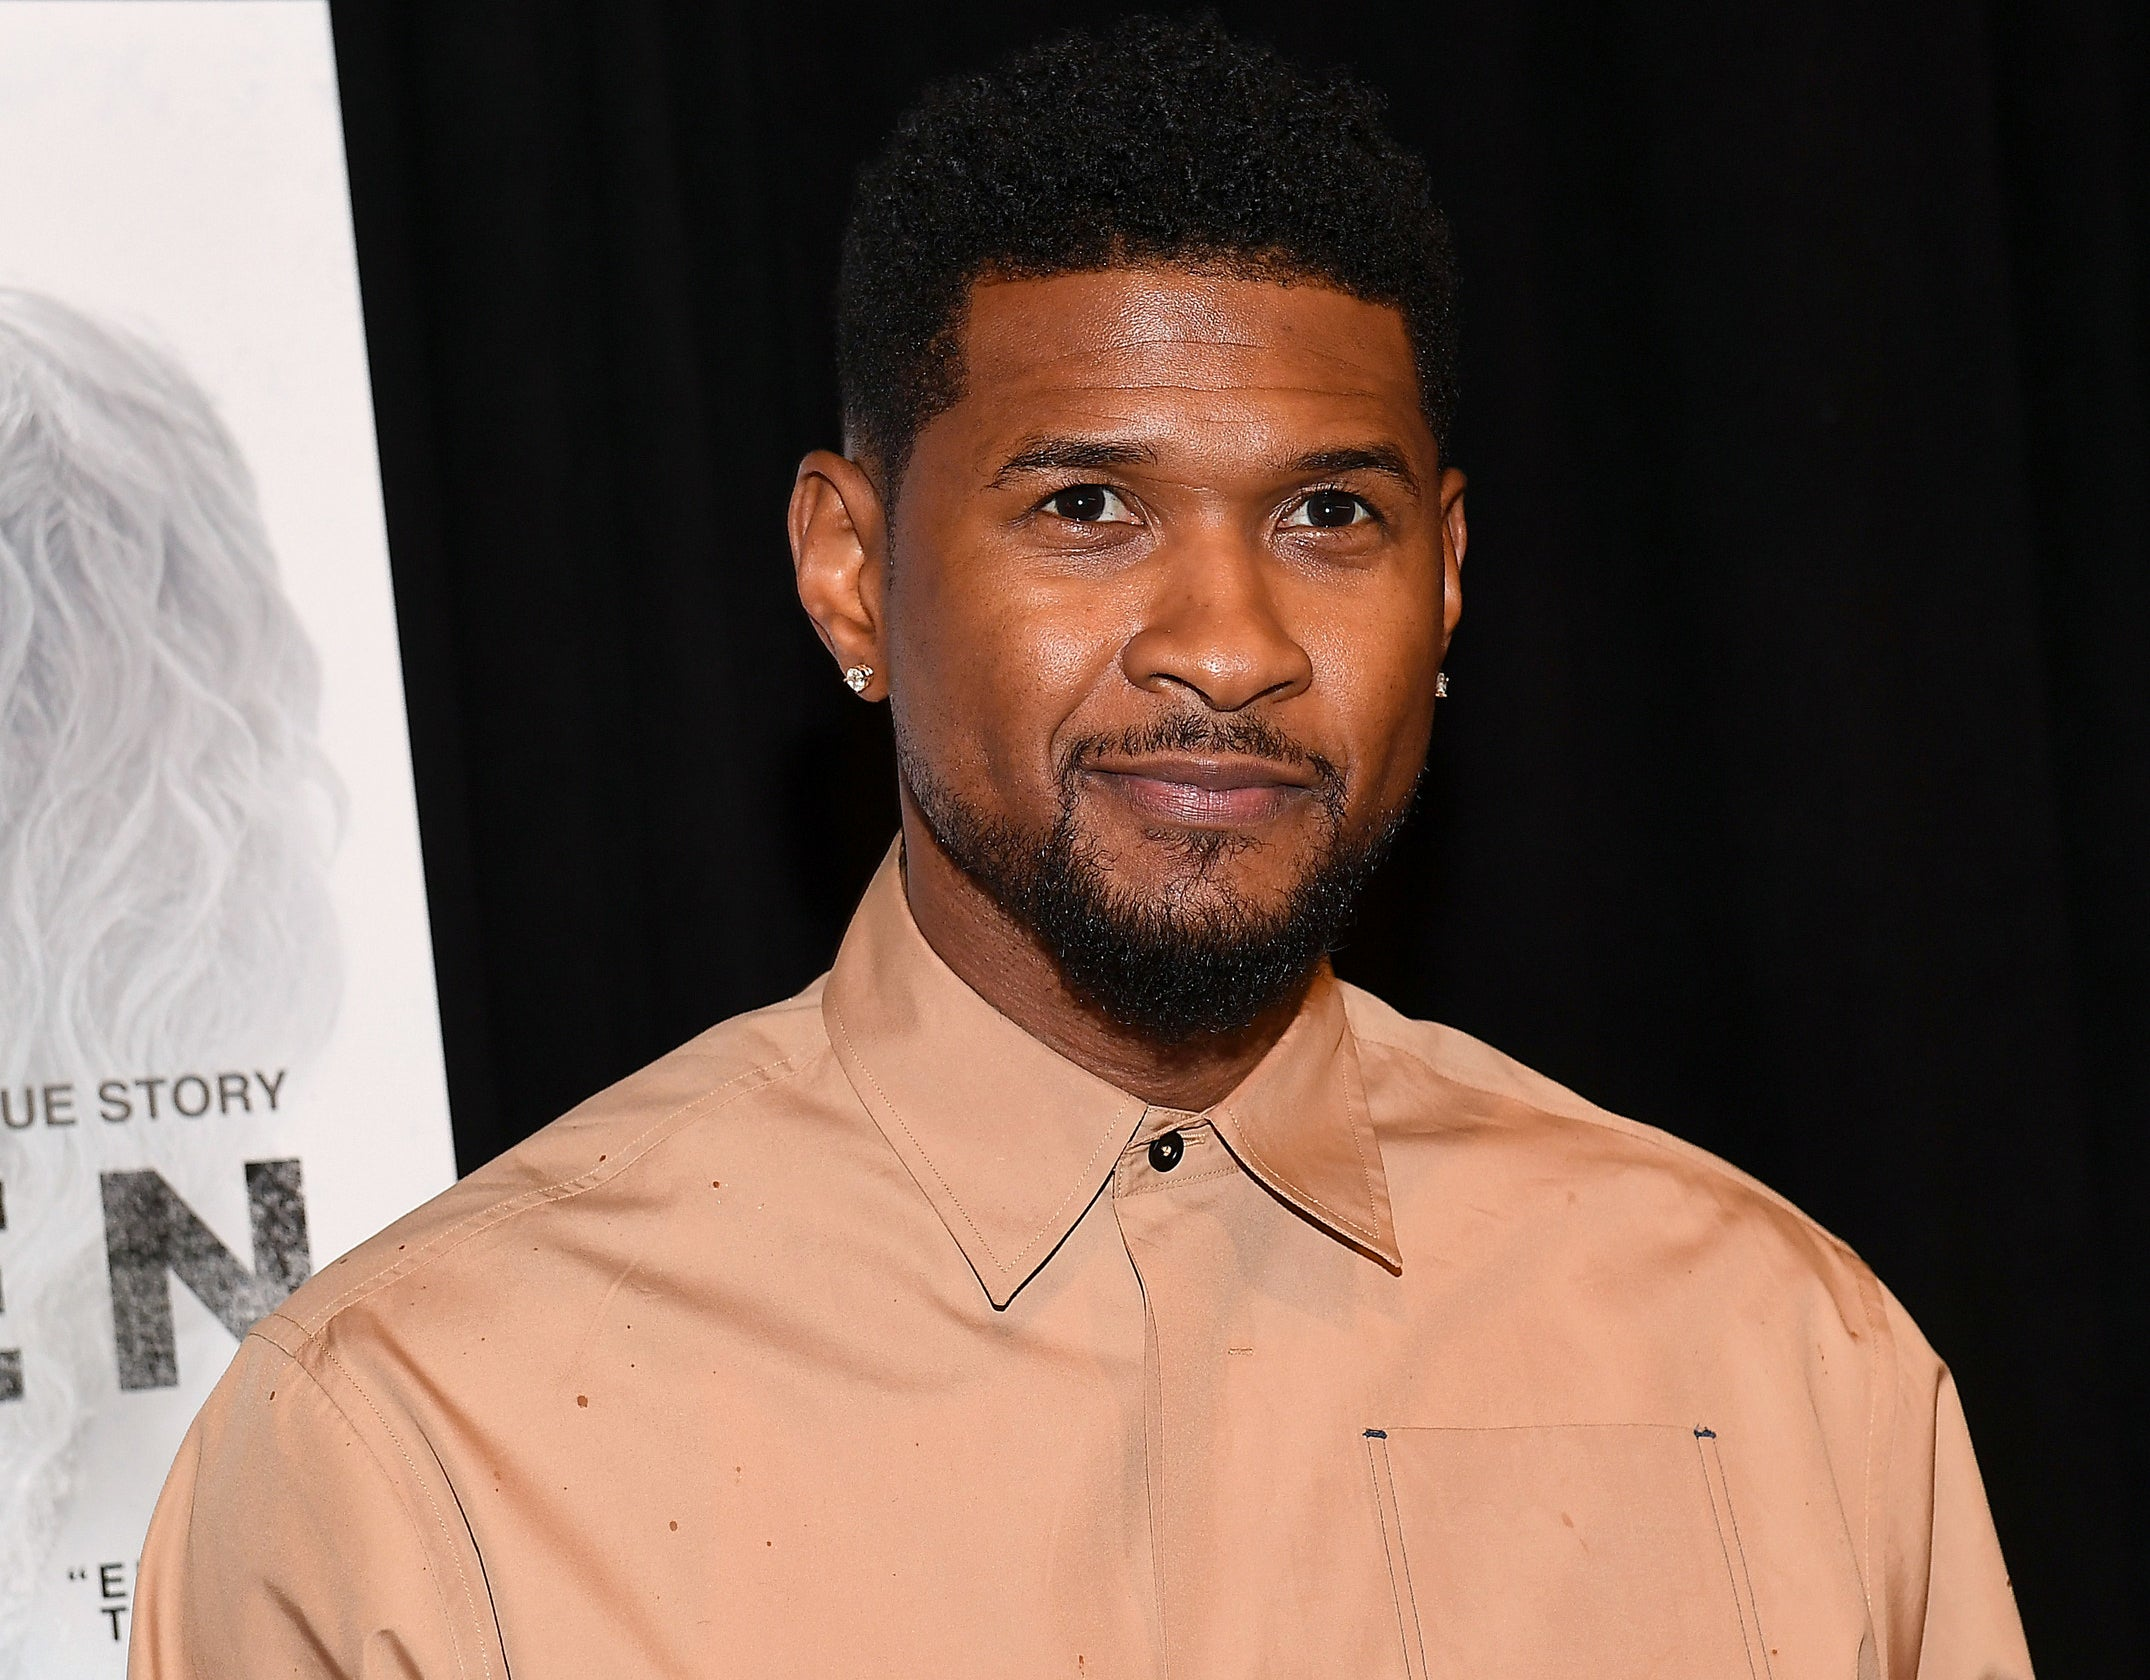 Usher looks serious while wearing a beige button down